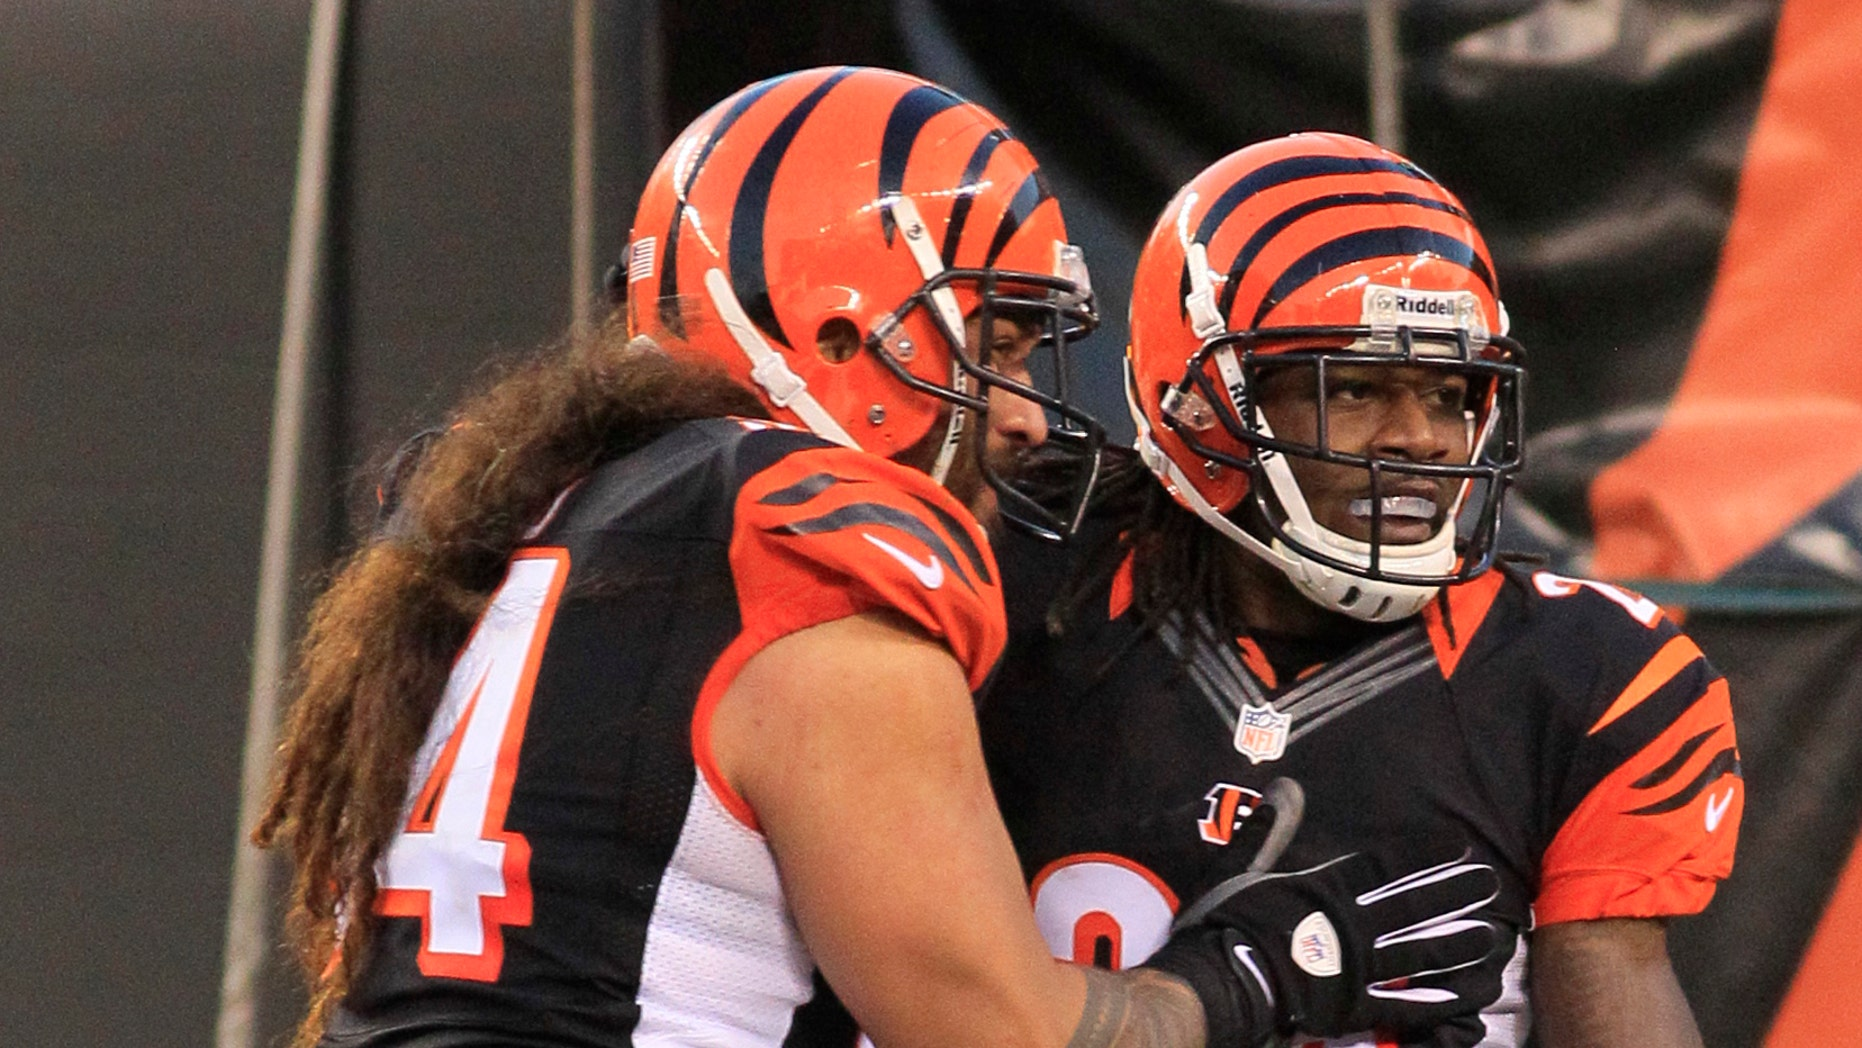 Cincinnati Bengals cornerback Adam Jones (24) is congratulated by defensive tackle Domata Peko (94) after Jones returned an interception 60 yards for a touchdown in the second half of an NFL football game against the New York Jets, Sunday, Oct. 27, 2013, in Cincinnati. Cincinnati won 49-9. (AP Photo/Tom Uhlman)